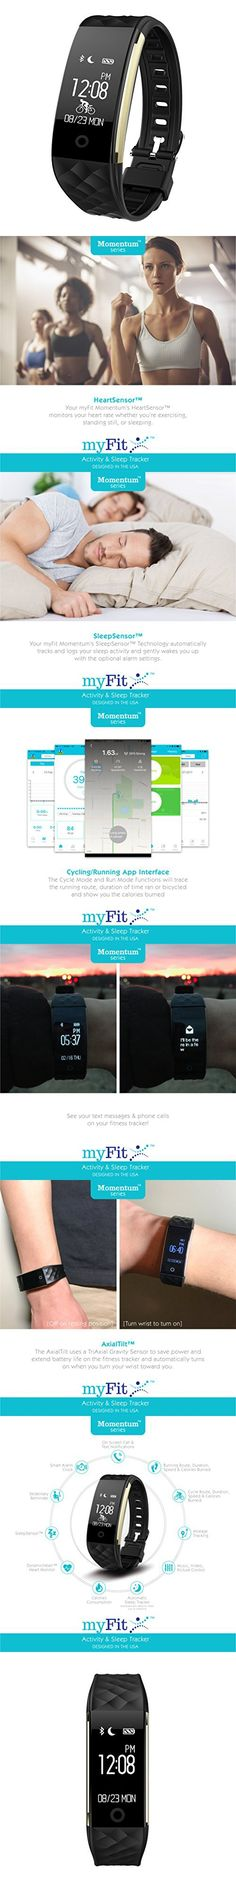 [New] myFit Momentum 2 Run & Cycle Series Fitness Activity & Automatic Sleep Tracker Watch Wrist Band Heart Rate Monitor Pedometer workout calorie sports distance step bit counter minute charge) Fitness Watch, Fitness Band, Fitness Tracker App, Run Cycle, Fitness Motivation, Fitness Workouts, Fit Couples, Fitness Activities, Heart Rate